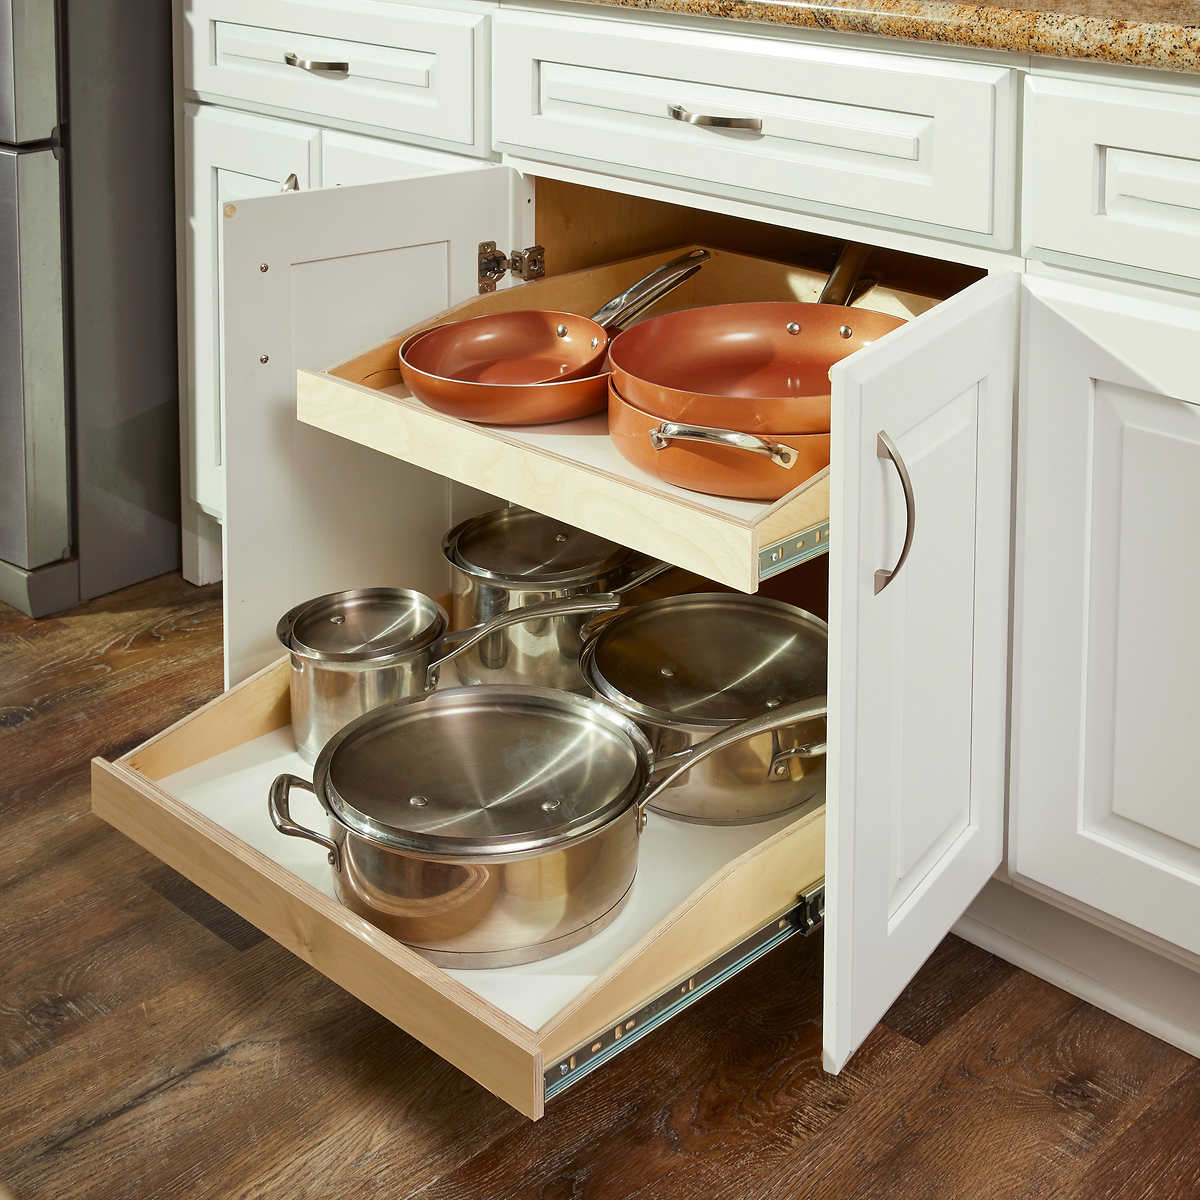 Made-to-fit Slide-out Shelves For Existing Cabinets By Slide-a-shelf